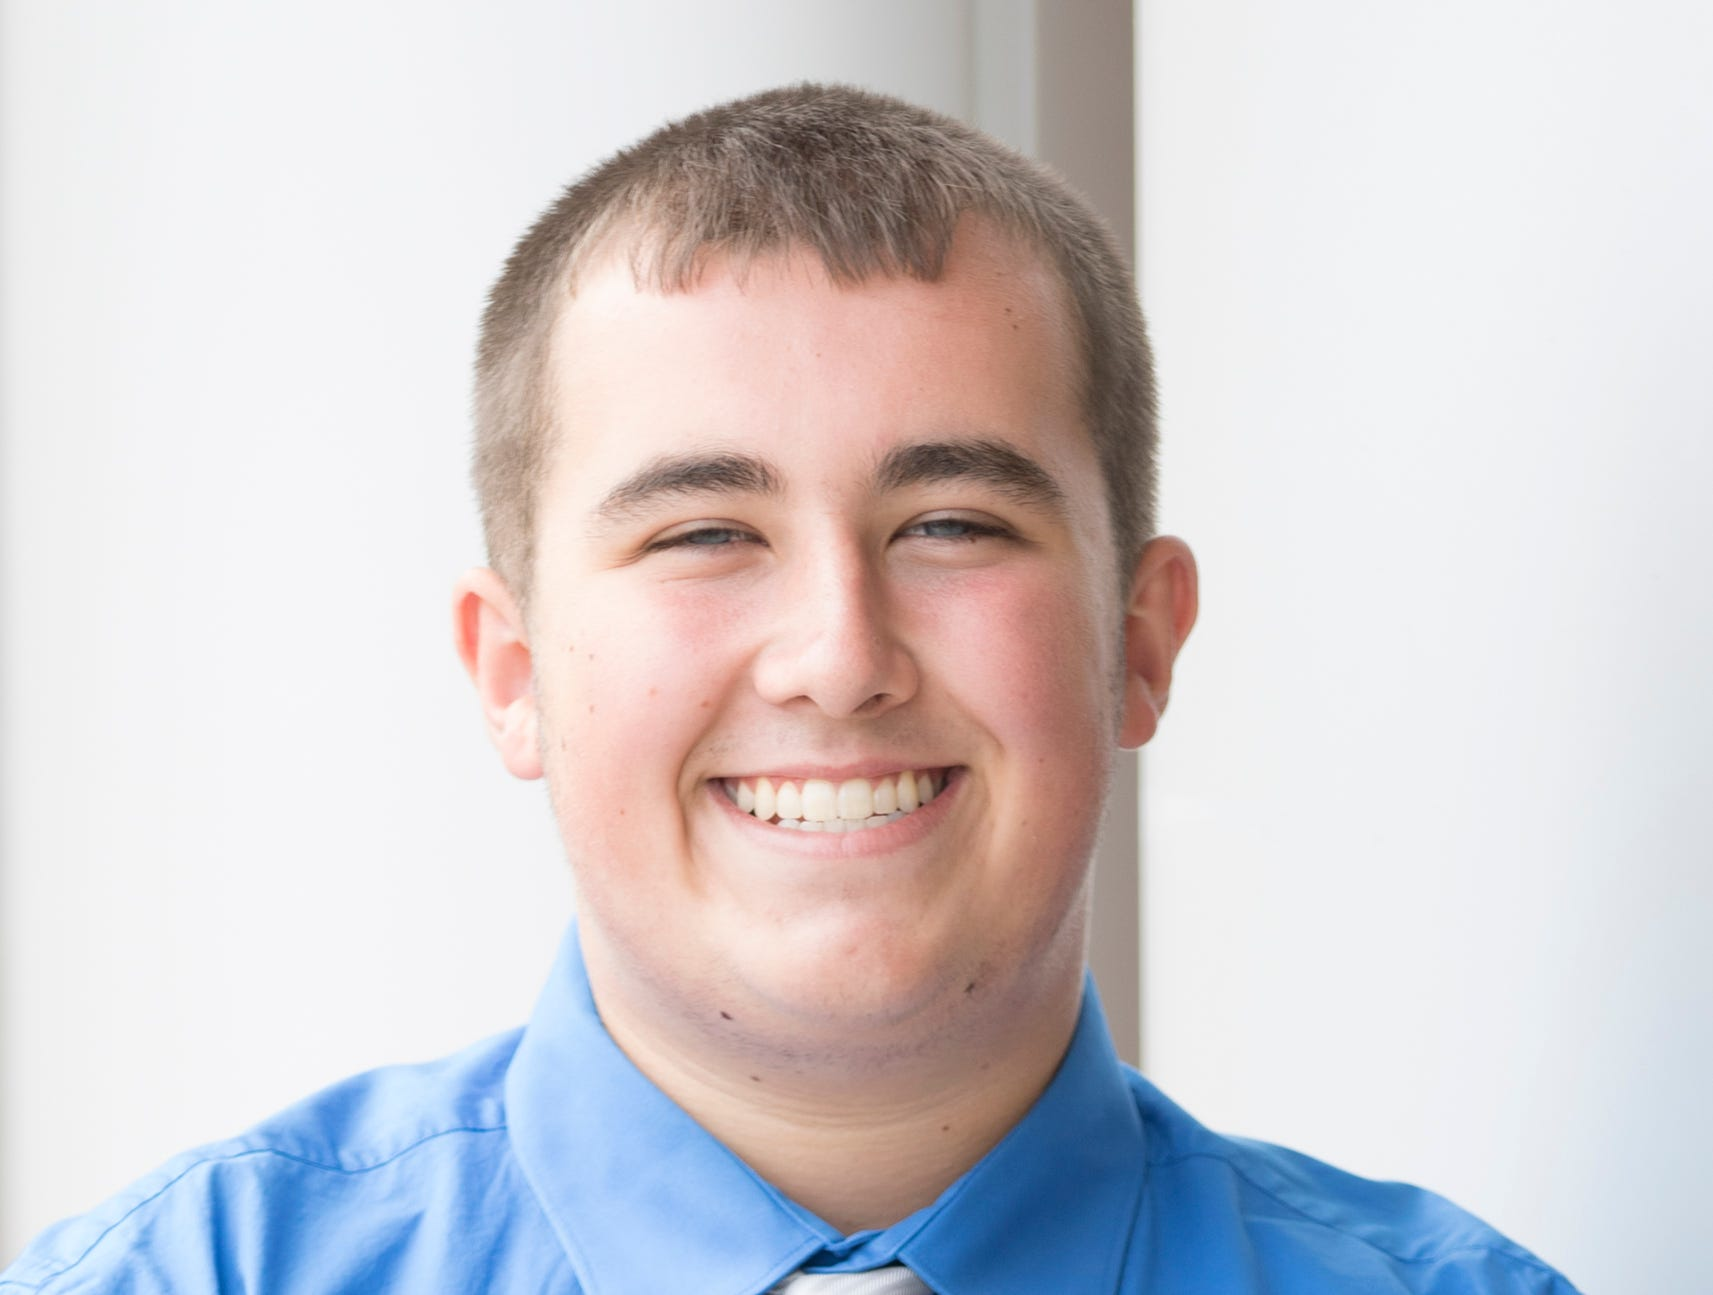 Johnathan Cokonougher is the 17-year-old son of Steve and Amanda Cokonougher. He is representing the Adena Hustlers 4-H Club. He attends Adena High School.